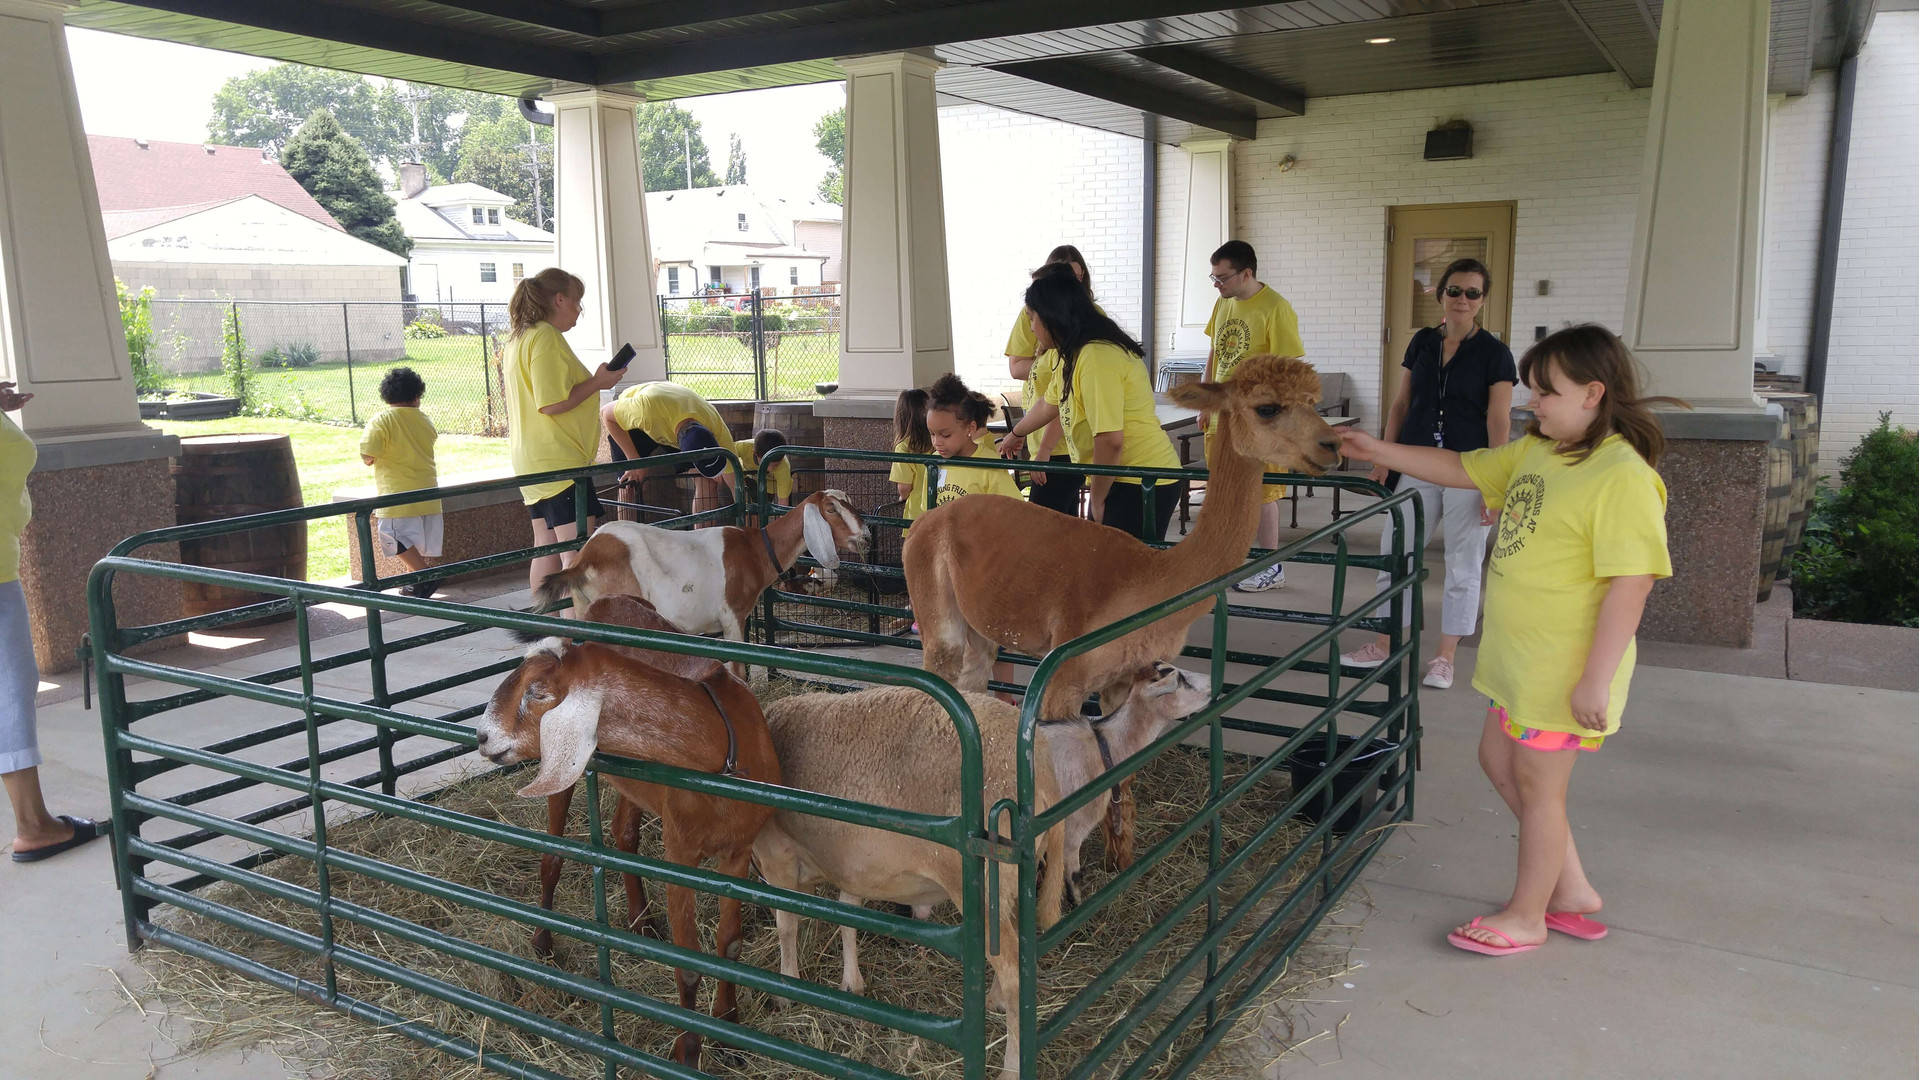 Super cool animals at the petting zoo